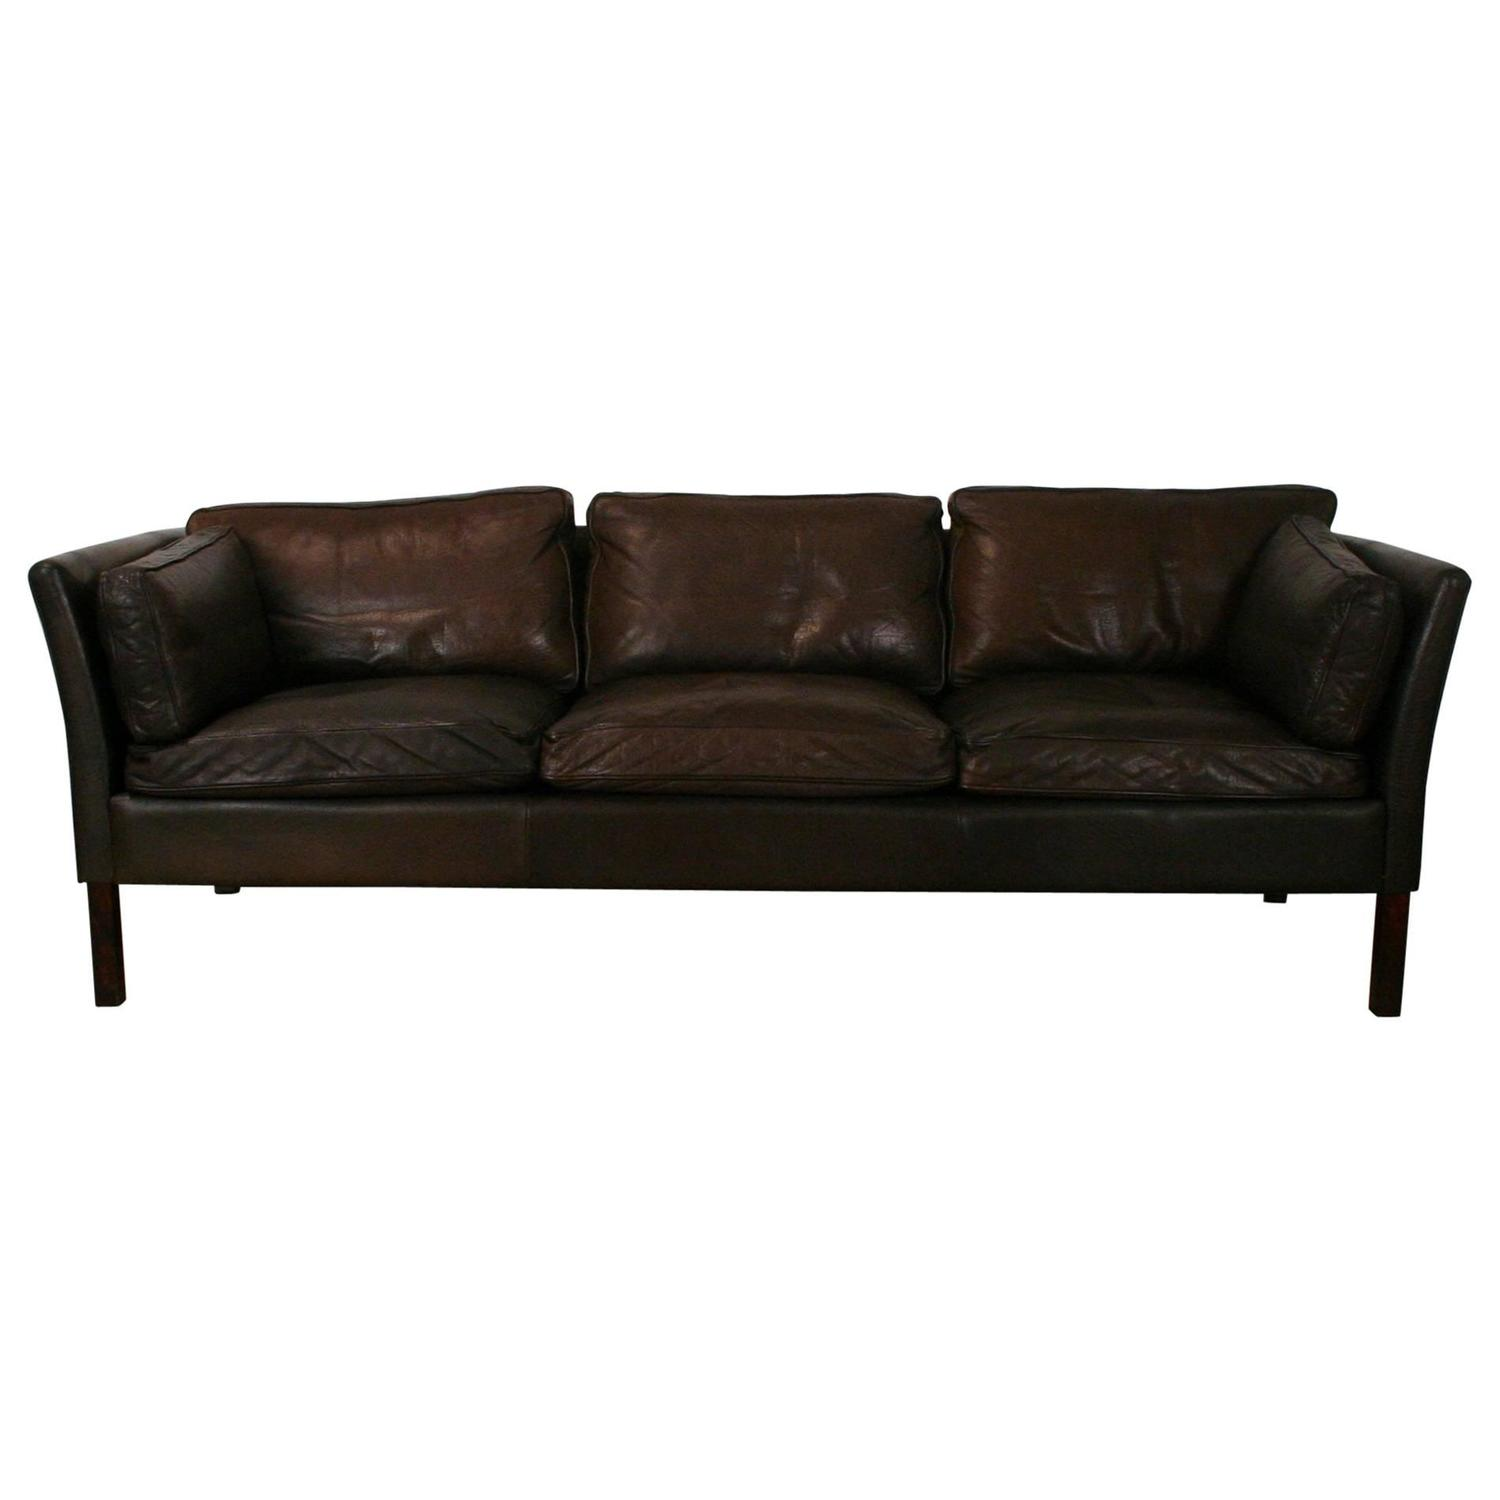 Vintage dark brown leather three seat sofa for sale at 1stdibs for Tan couches for sale